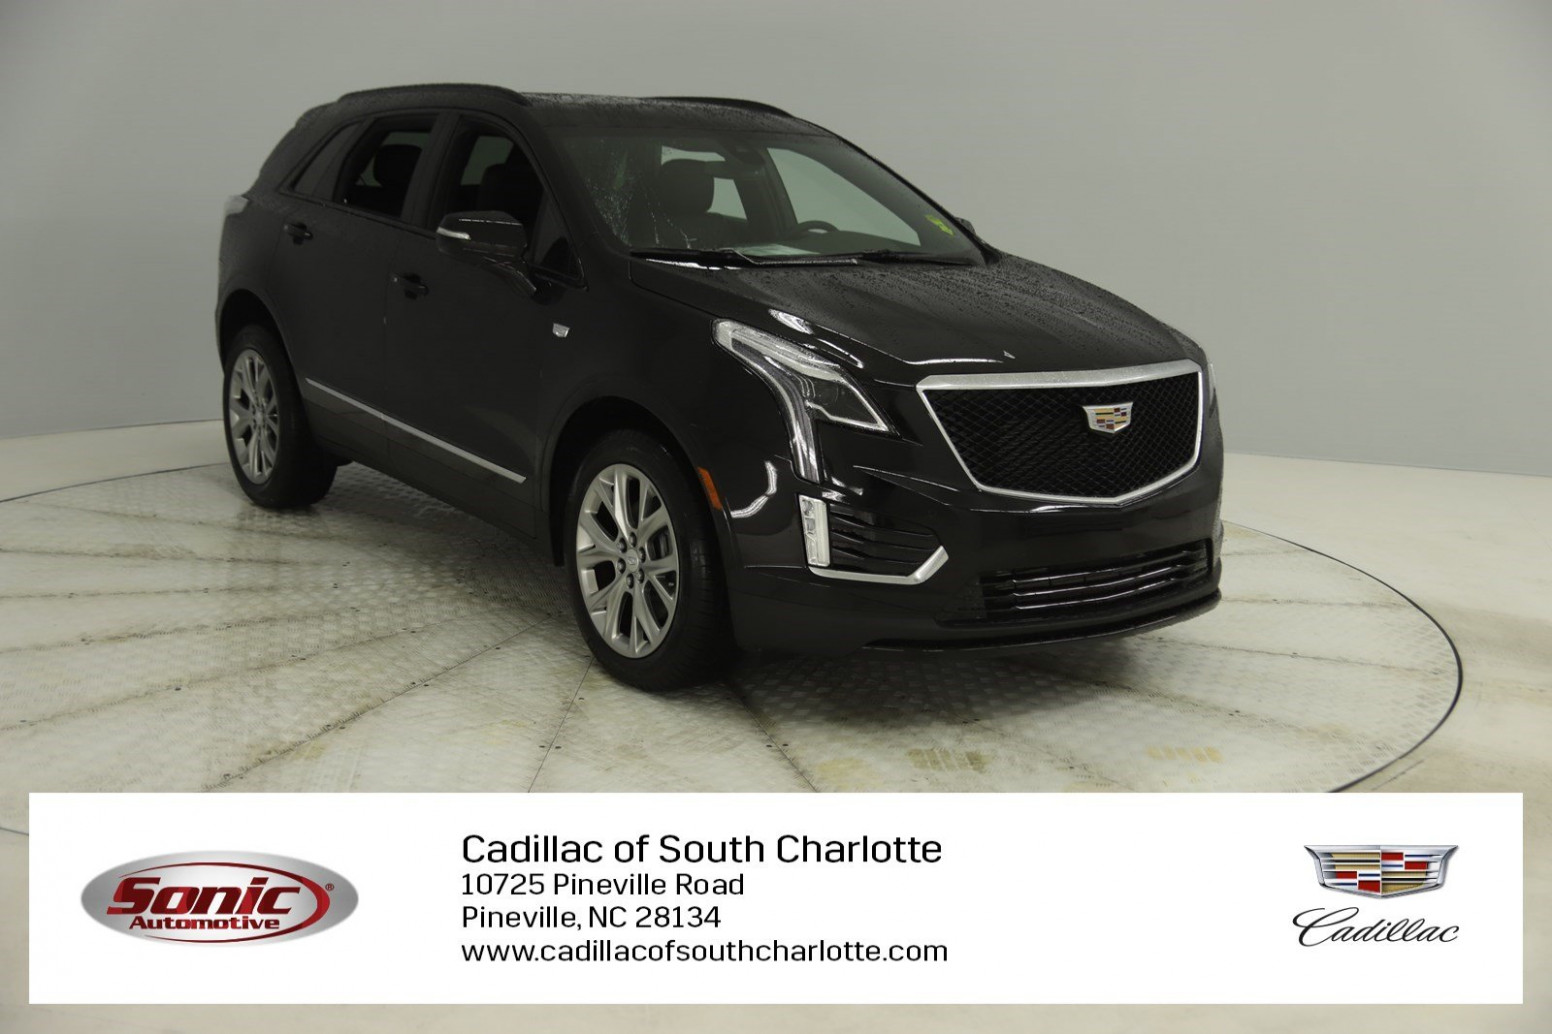 9 Cadillac XT9 for Sale in Columbia, SC 9 | Kelley Blue Book - kelley blue book 2020 cadillac xt5